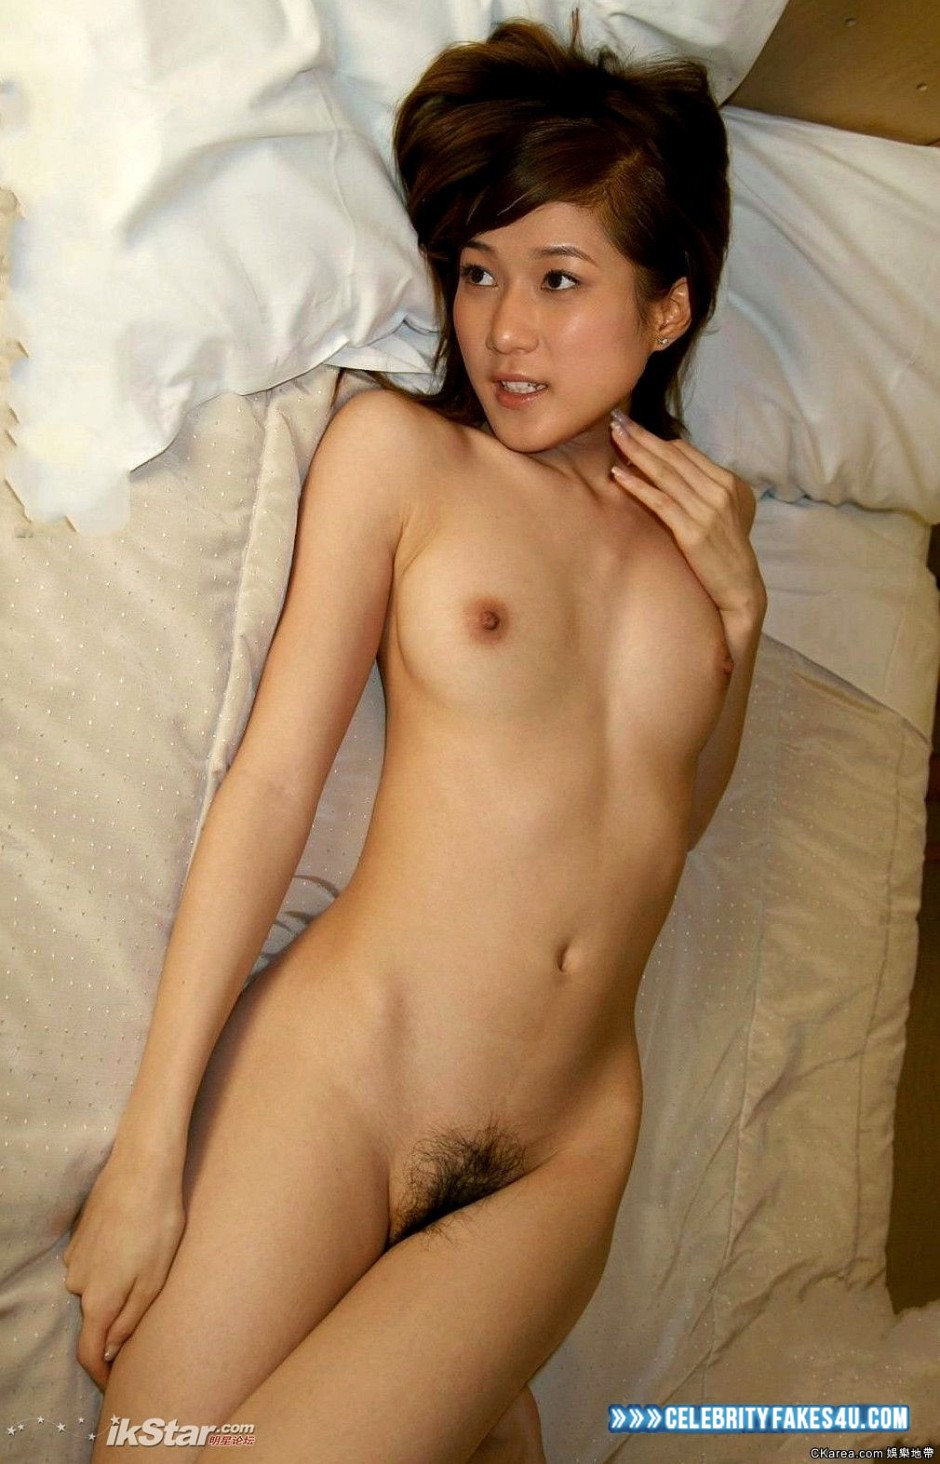 Linda Chung Homemade Hairy Pussy Porn Fake 001  Celebrity Fakes 4U-9599